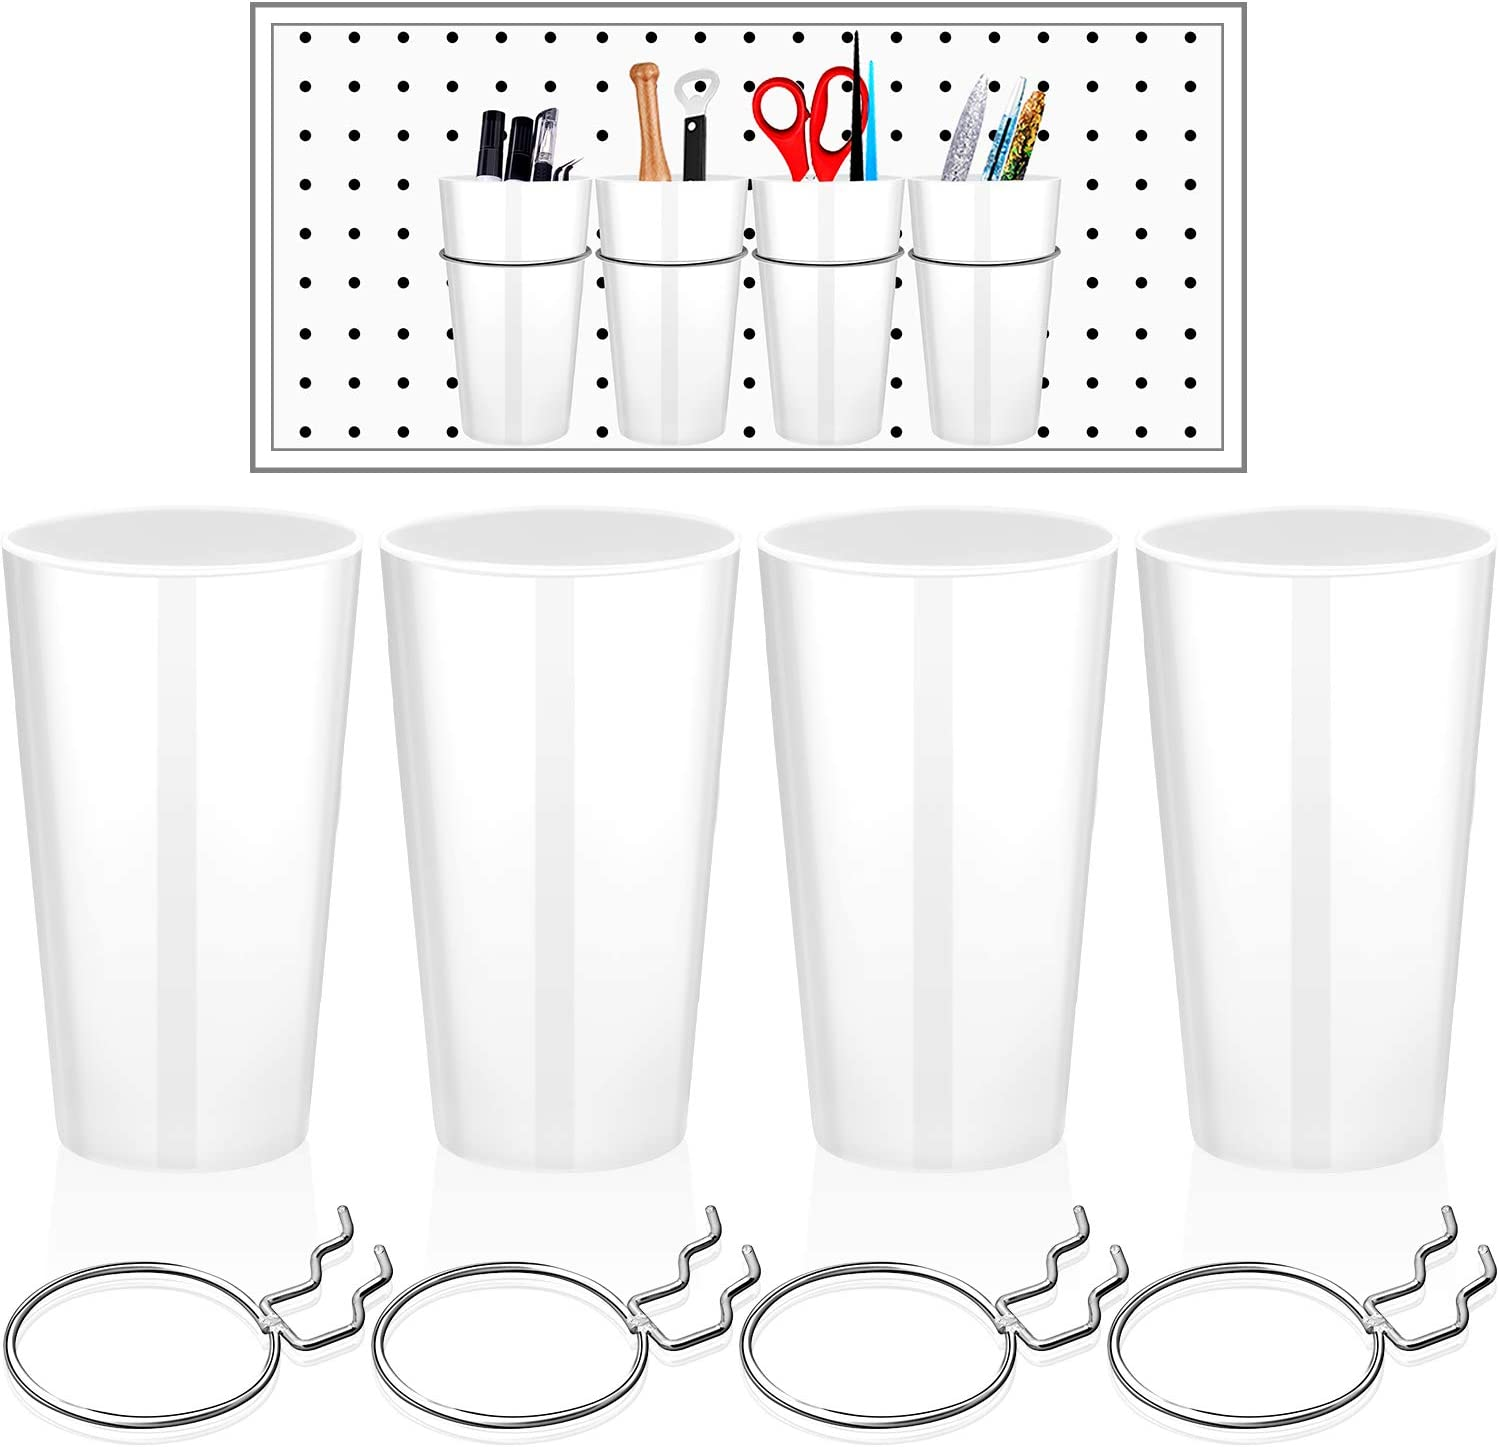 Ring Style Pegboard Accessories with Pegboard Cups Holder Accessories Organizing for Shed Garage Workbench Craft Room Laundry Room or Kitchen 4 Sets Pegboard Bins with Rings Clear